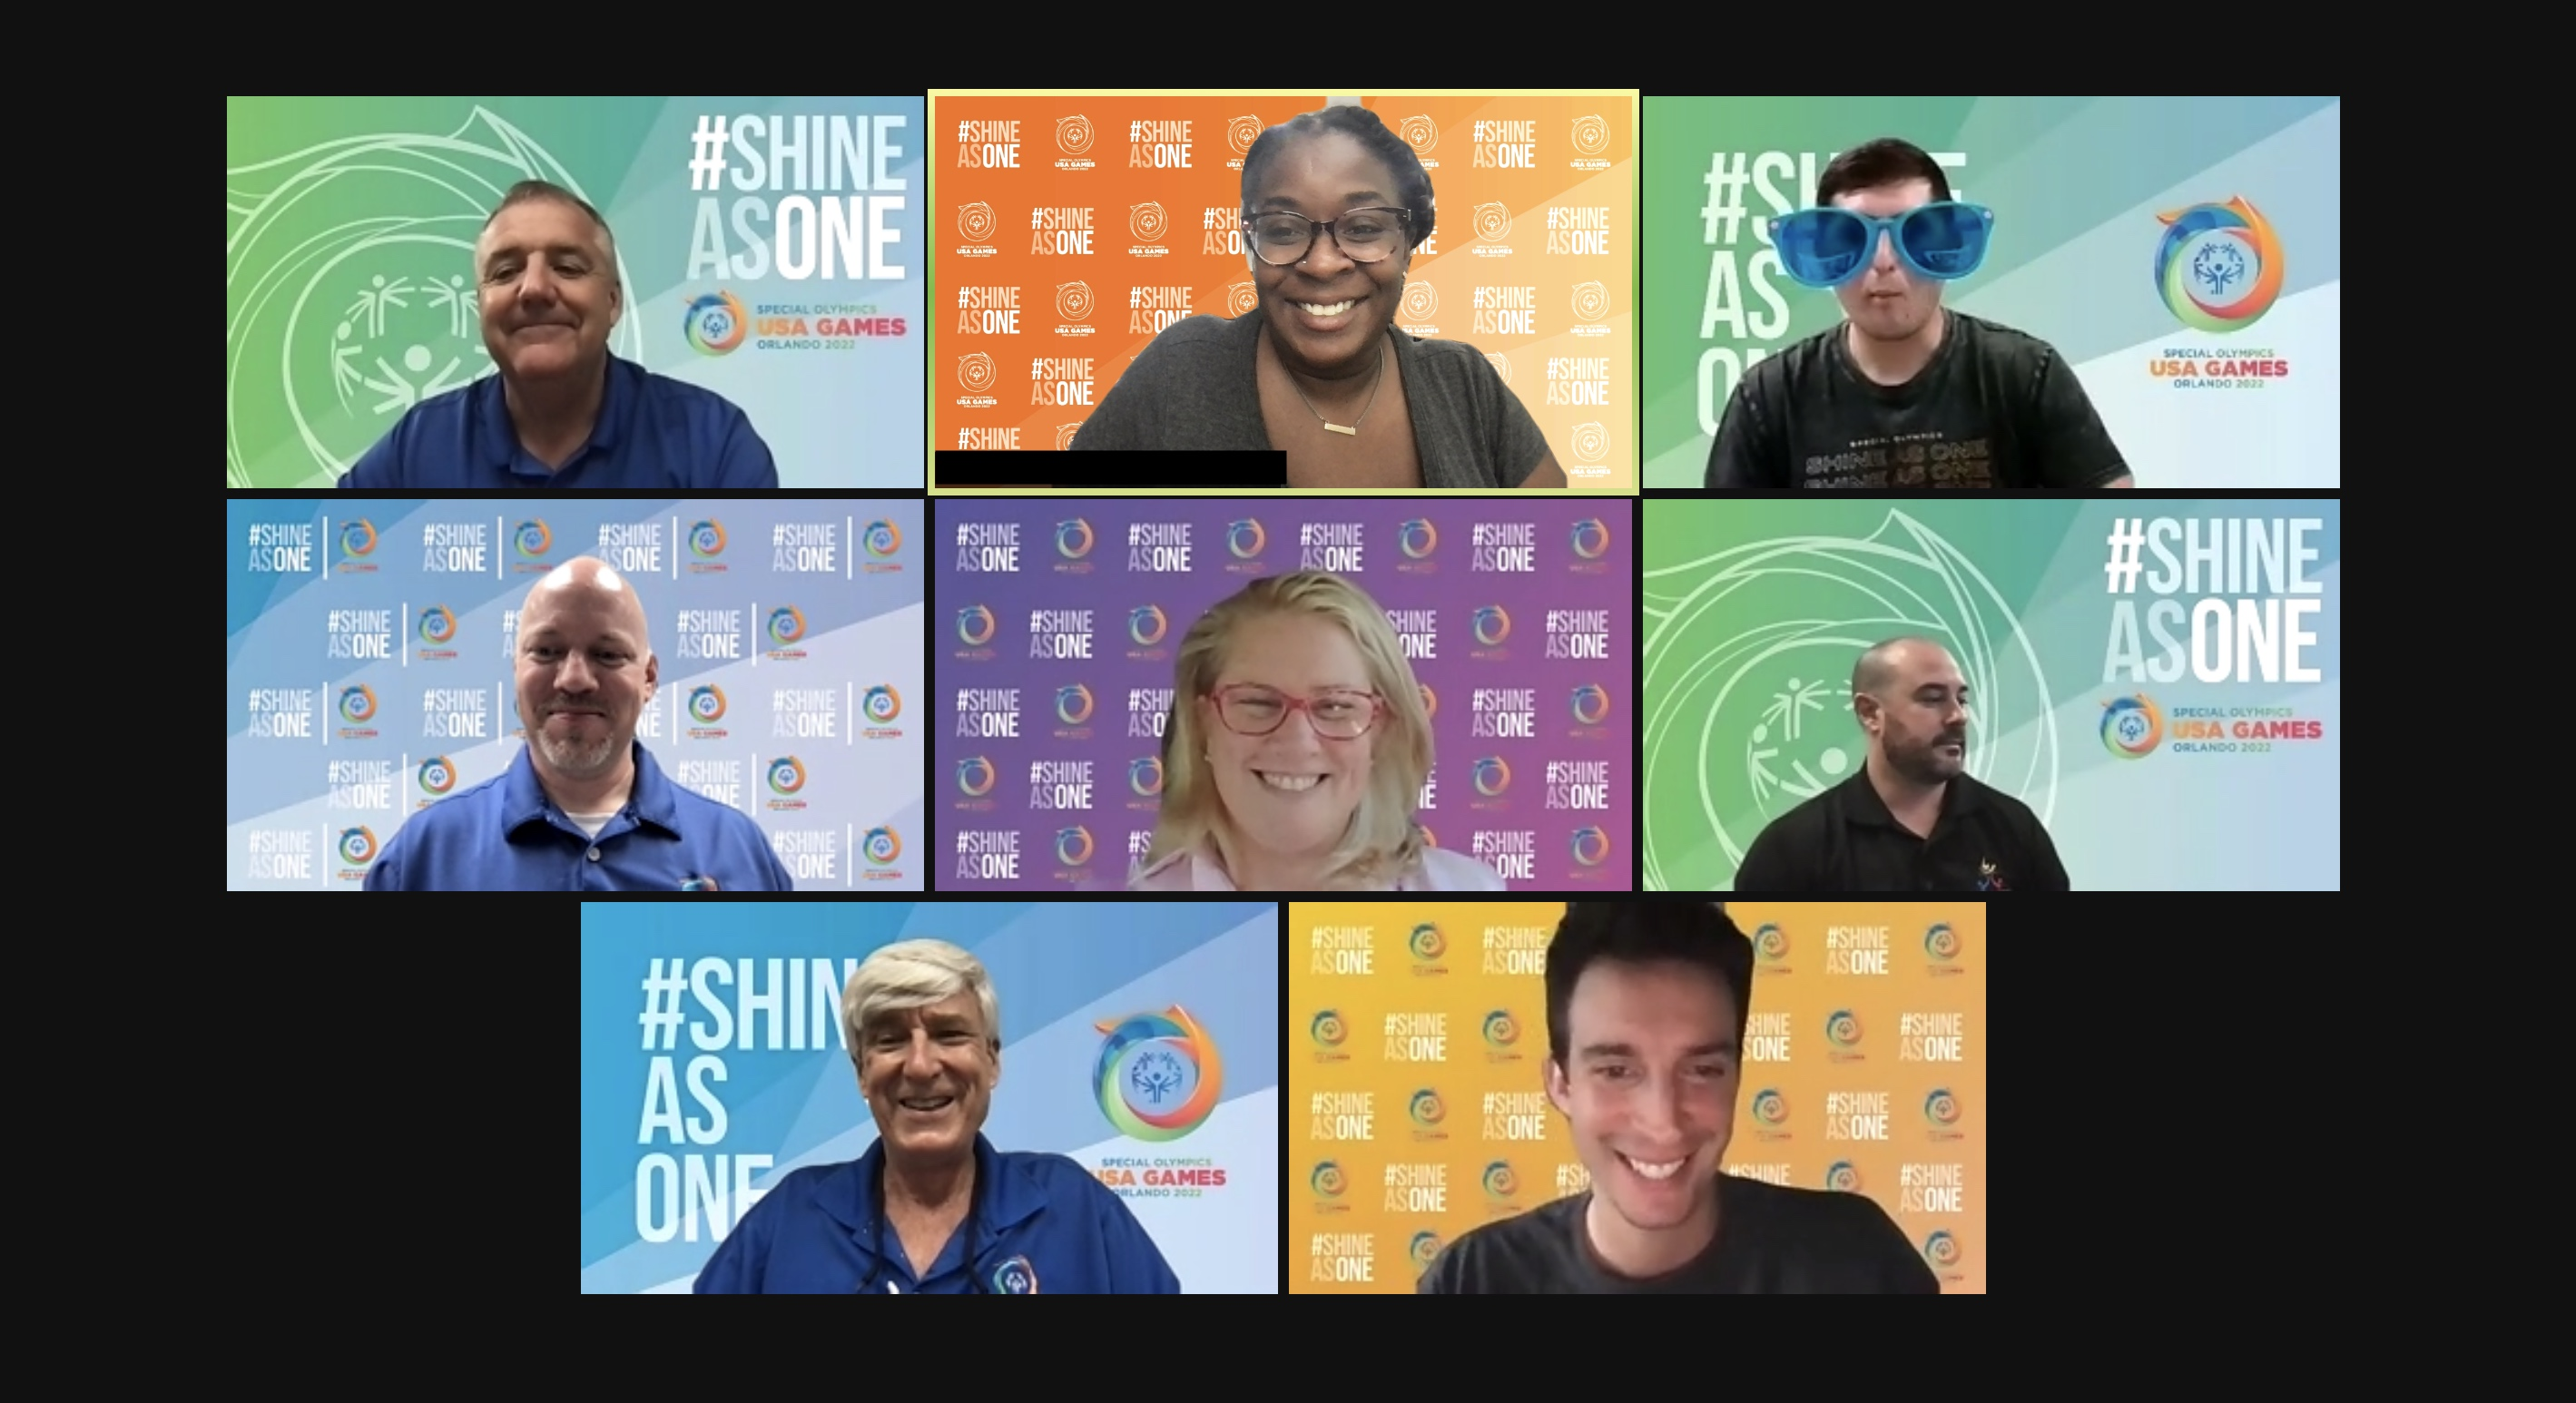 SHINE AS ONE - VIRTUAL MEETING BACKGROUNDS